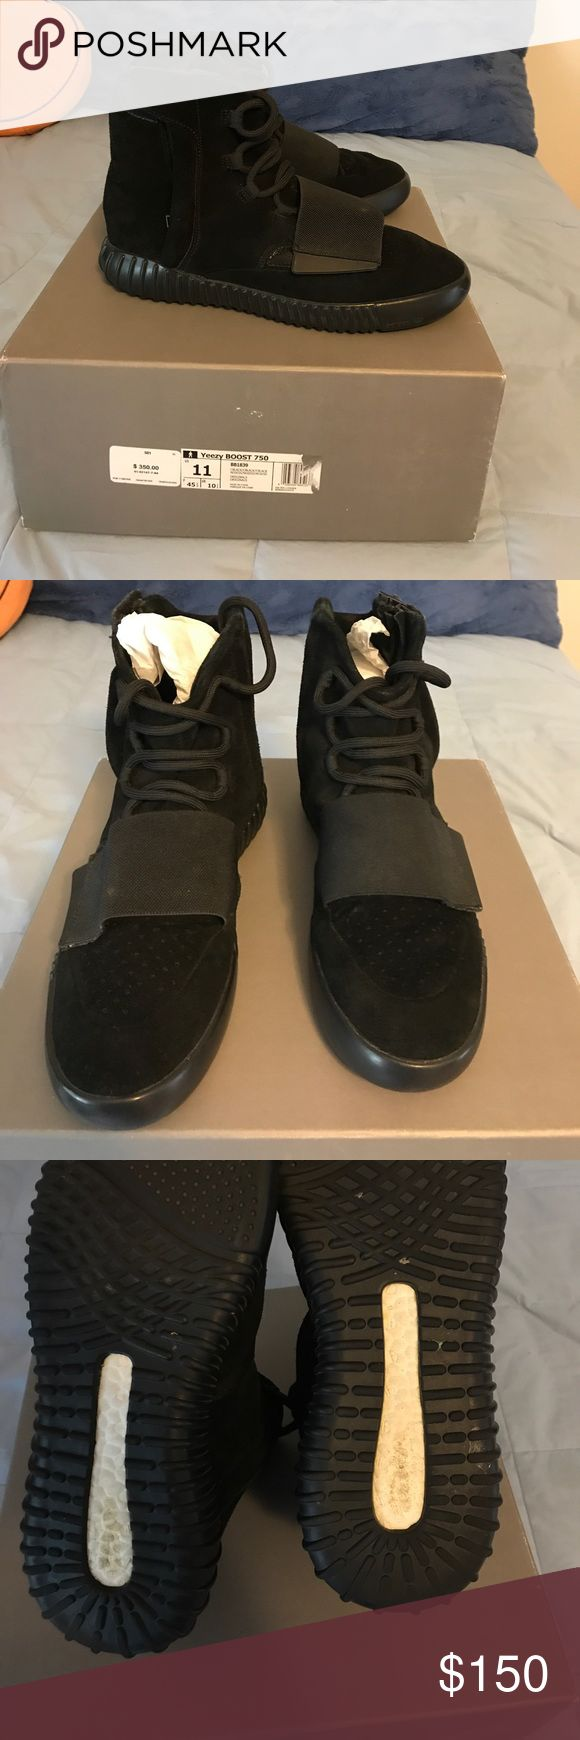 UA Yeezy Boost 750 Triple Black This is an unauthentic/fake pair of Yeezy boost 750 in the triple black colorway. I am selling to recover from the loss I took when I was scammed on these. Fortunately for anyone whos interested, this is a great way to dress nice with an affordable price. These are 9/10 condition with the only flaws being dirty bottoms. They are cleanable however. Enjoy. Feel free to ask questions. Yeezy Shoes Sneakers